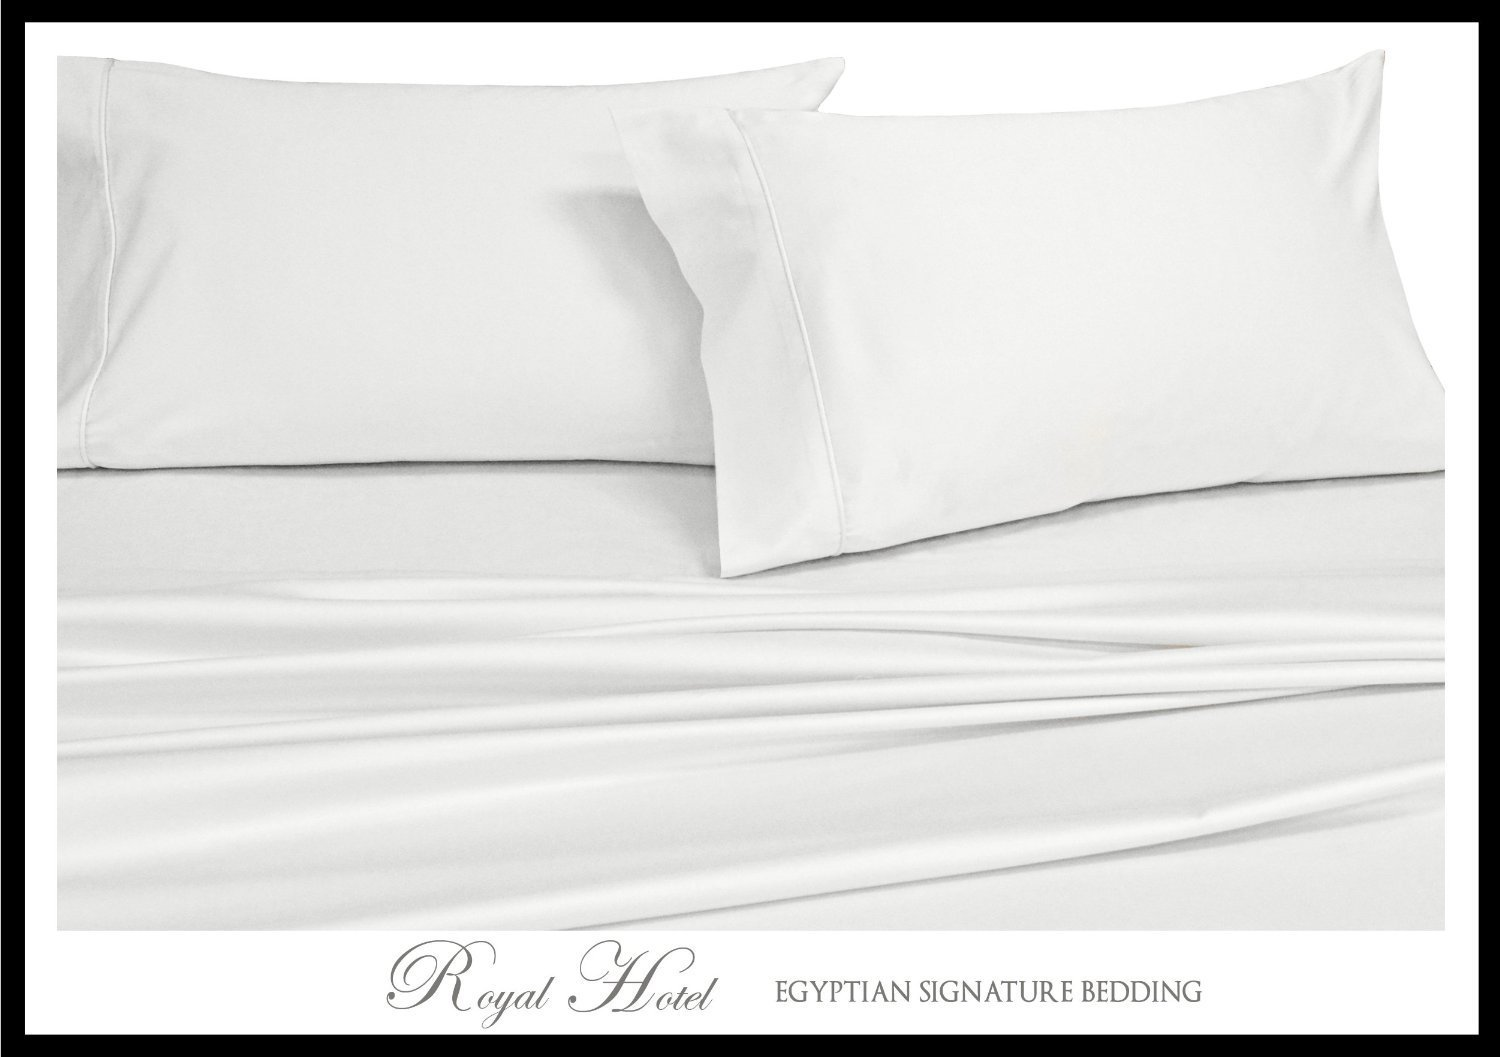 Royal Hotel 100% Viscose from Bamboo Sheet Set - Bamboo Cooling Sheets